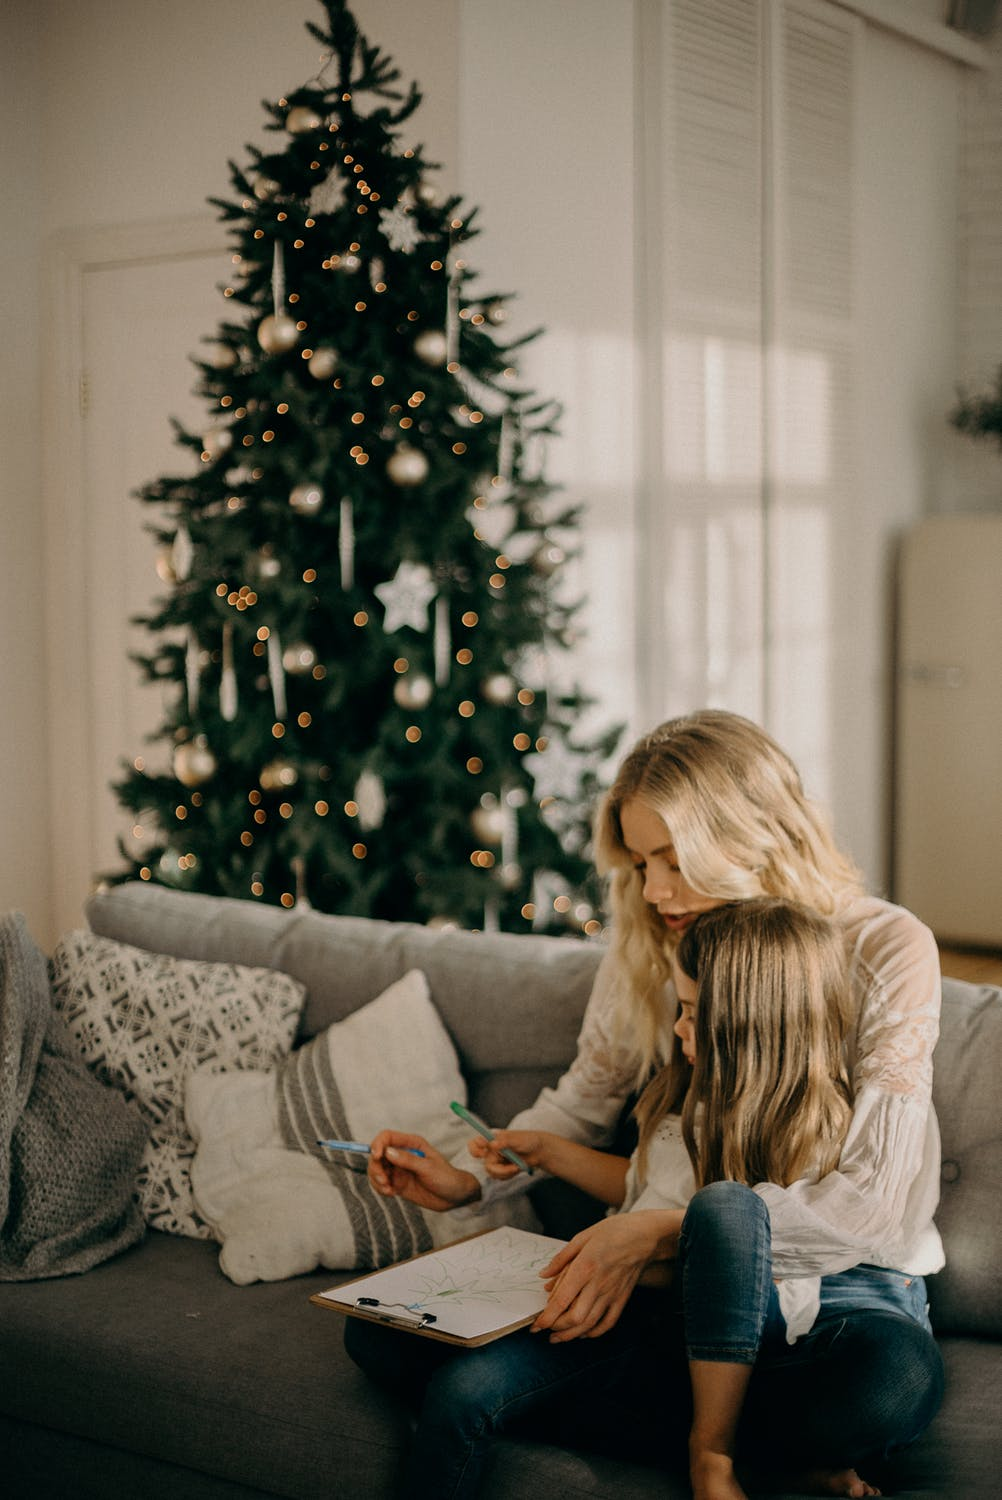 Mother and daughter sitting on a couch with a Christmas tree in the back.